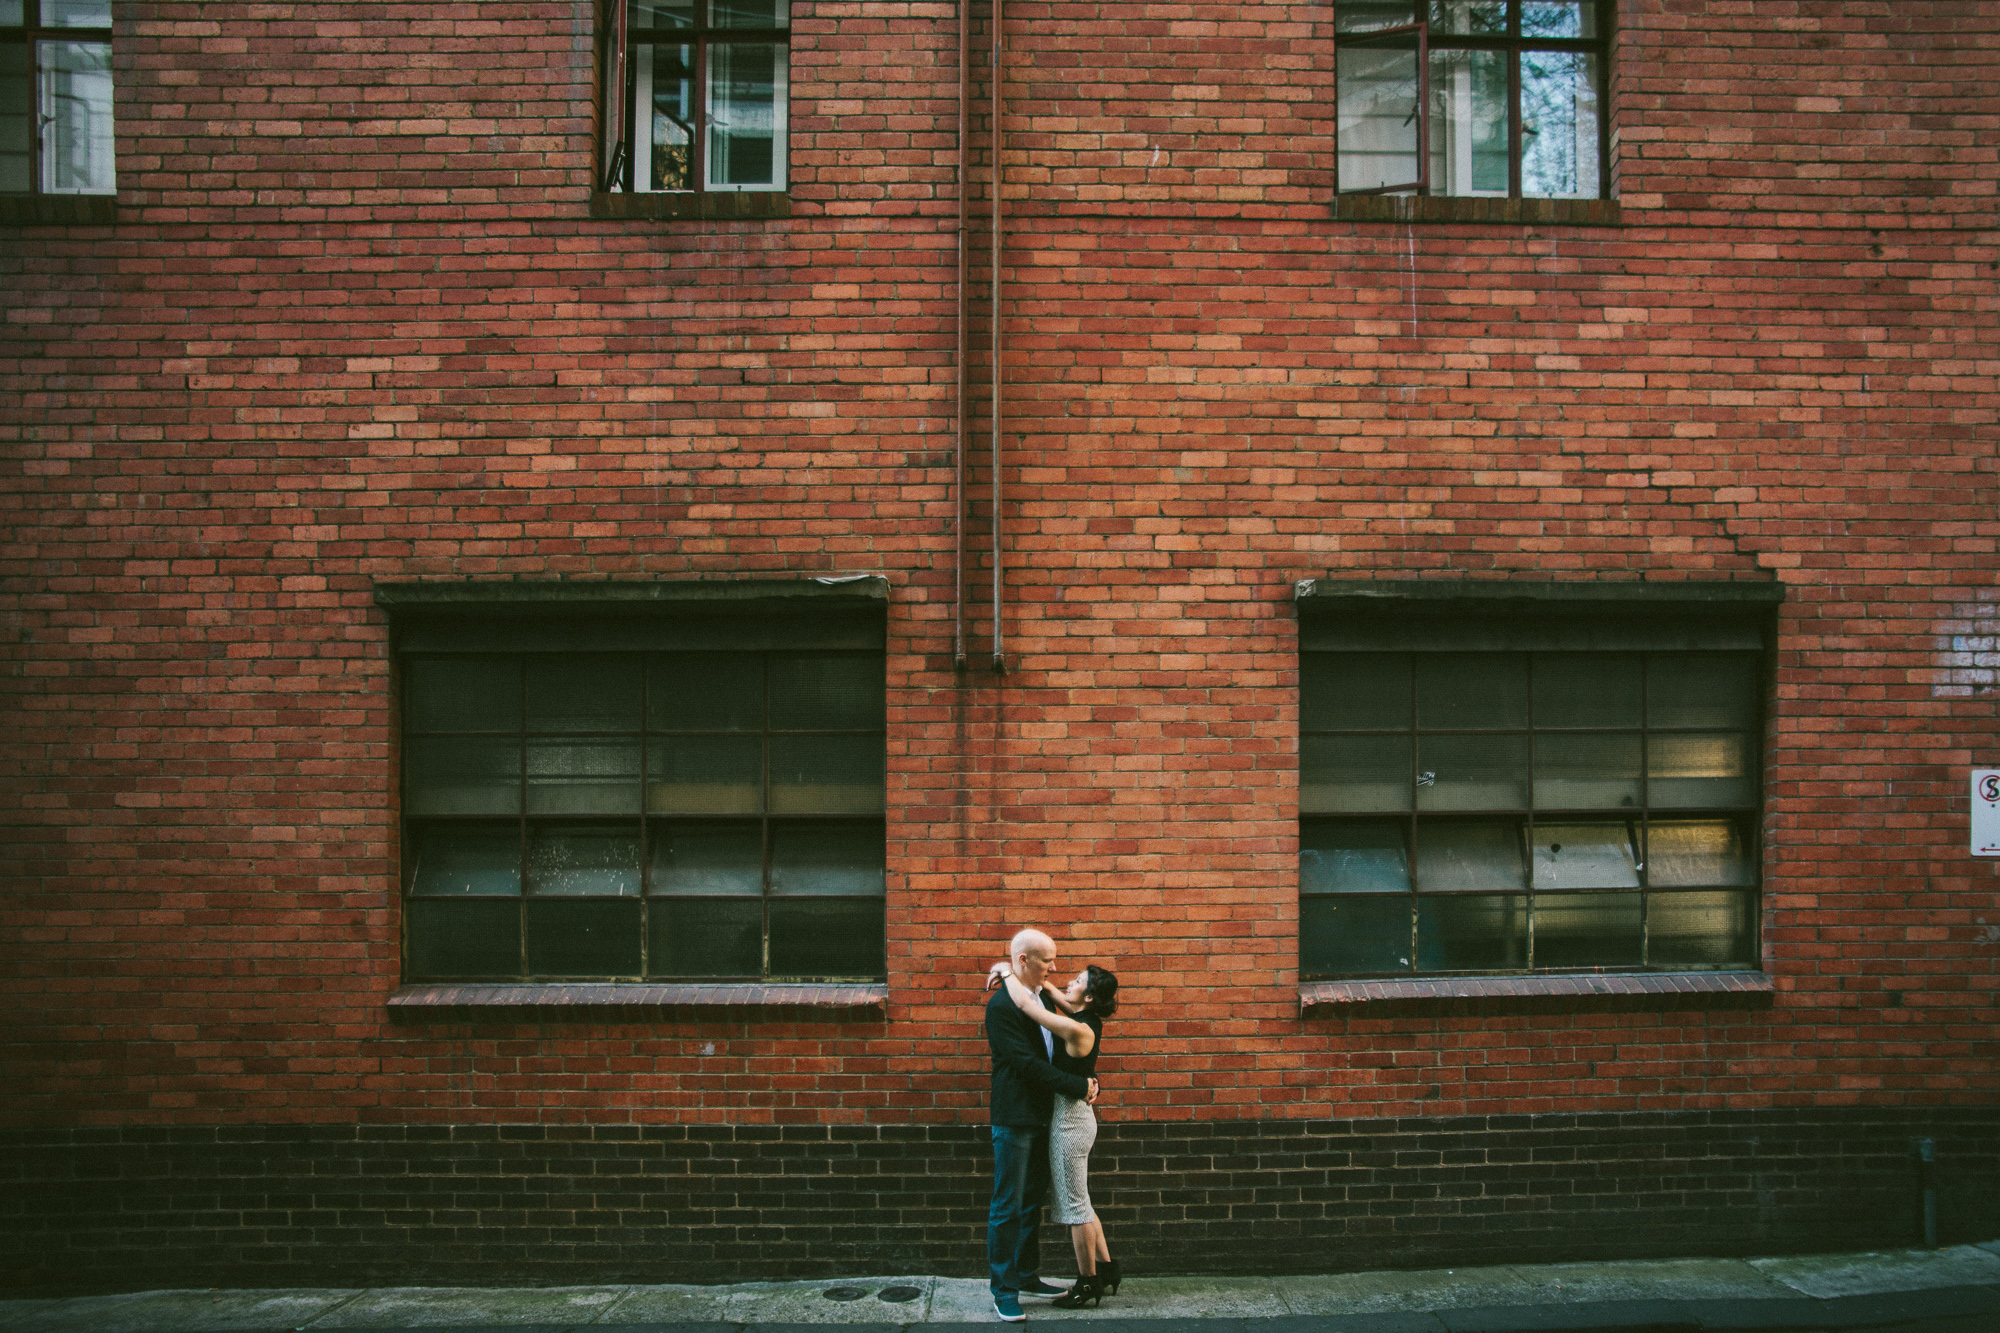 Elaine-Stephen-Engagement-Melbourne-Quirky-Urban-Engagement-Session-Wedding-Photography-3